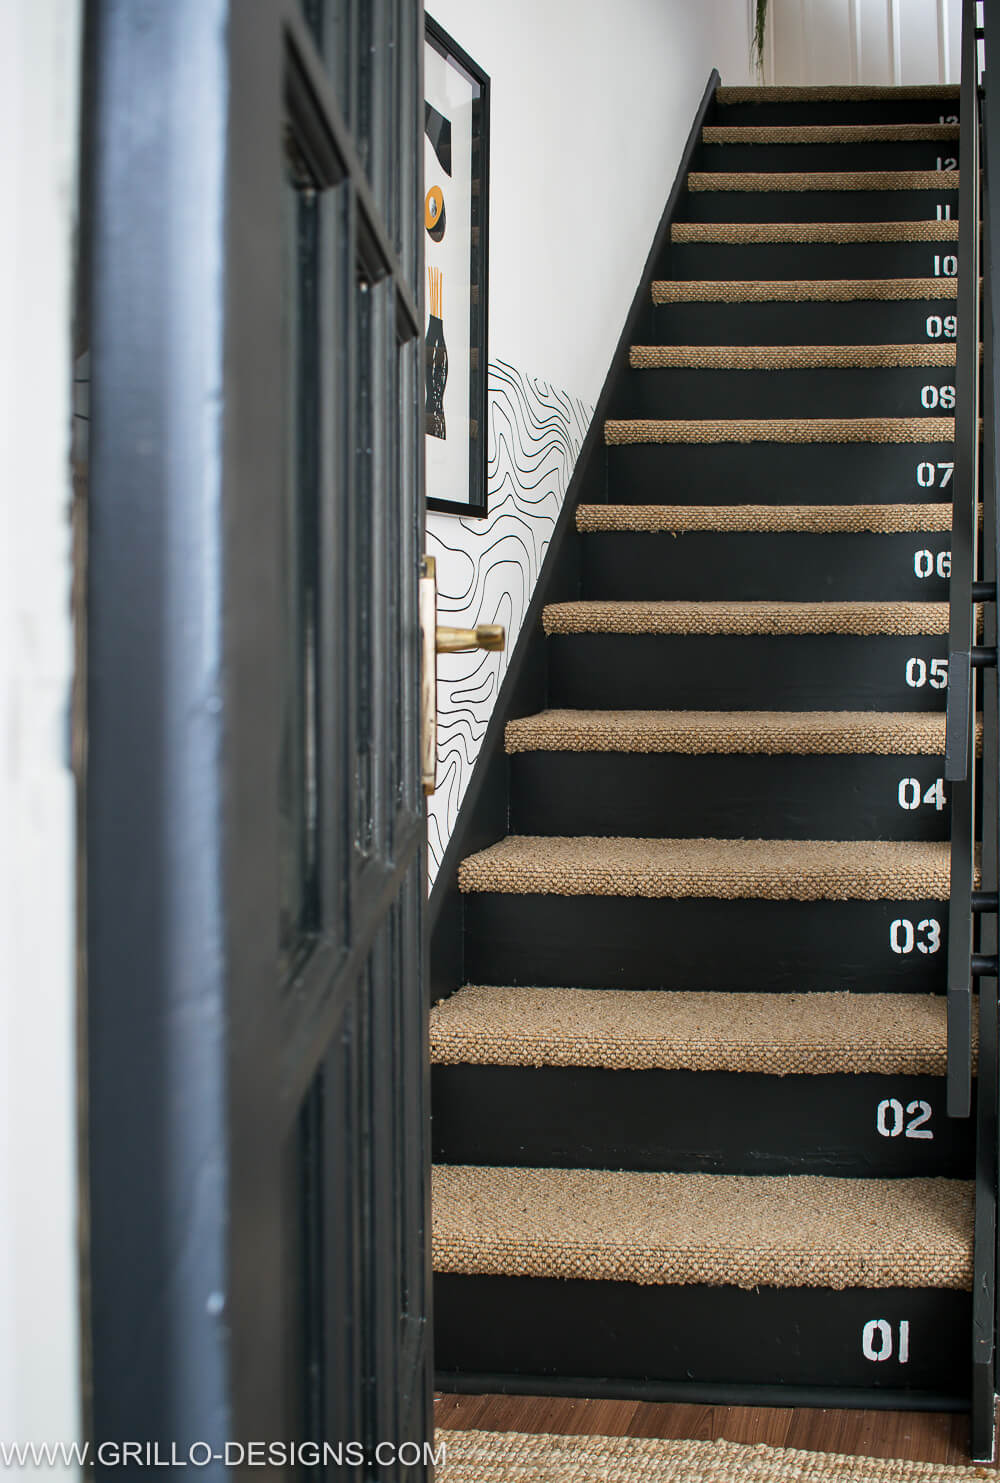 industrial style stairs makeover with stencilled numbers / Grillo Designs